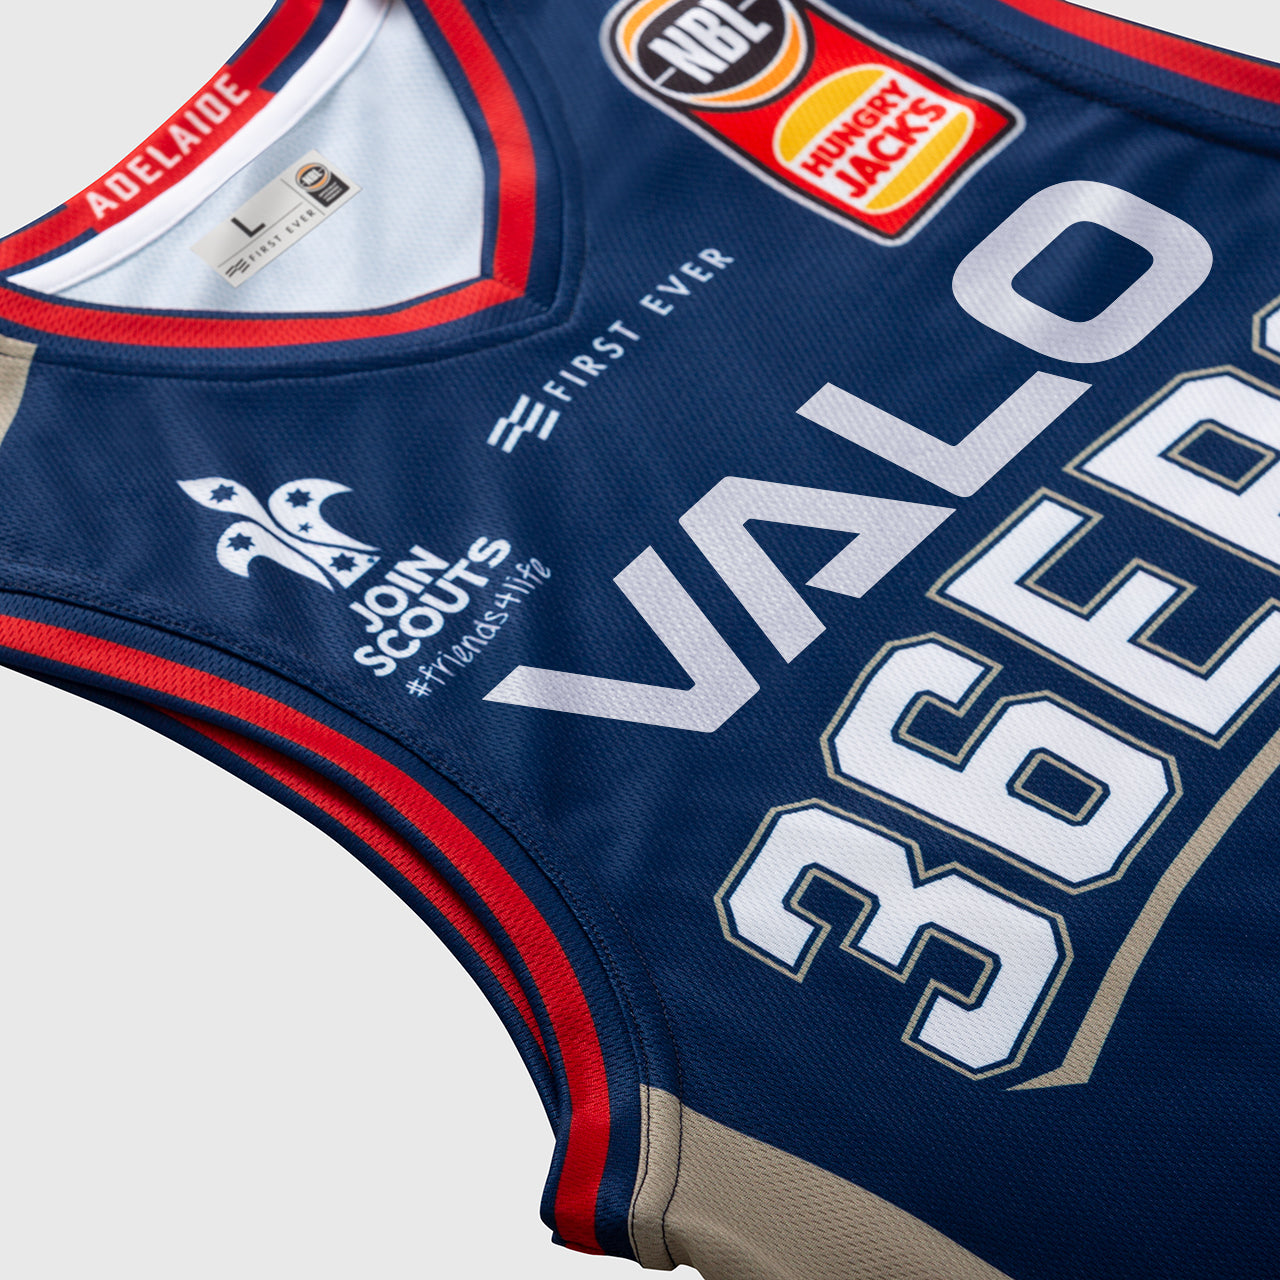 Adelaide 36ers 18/19 Authentic Jersey